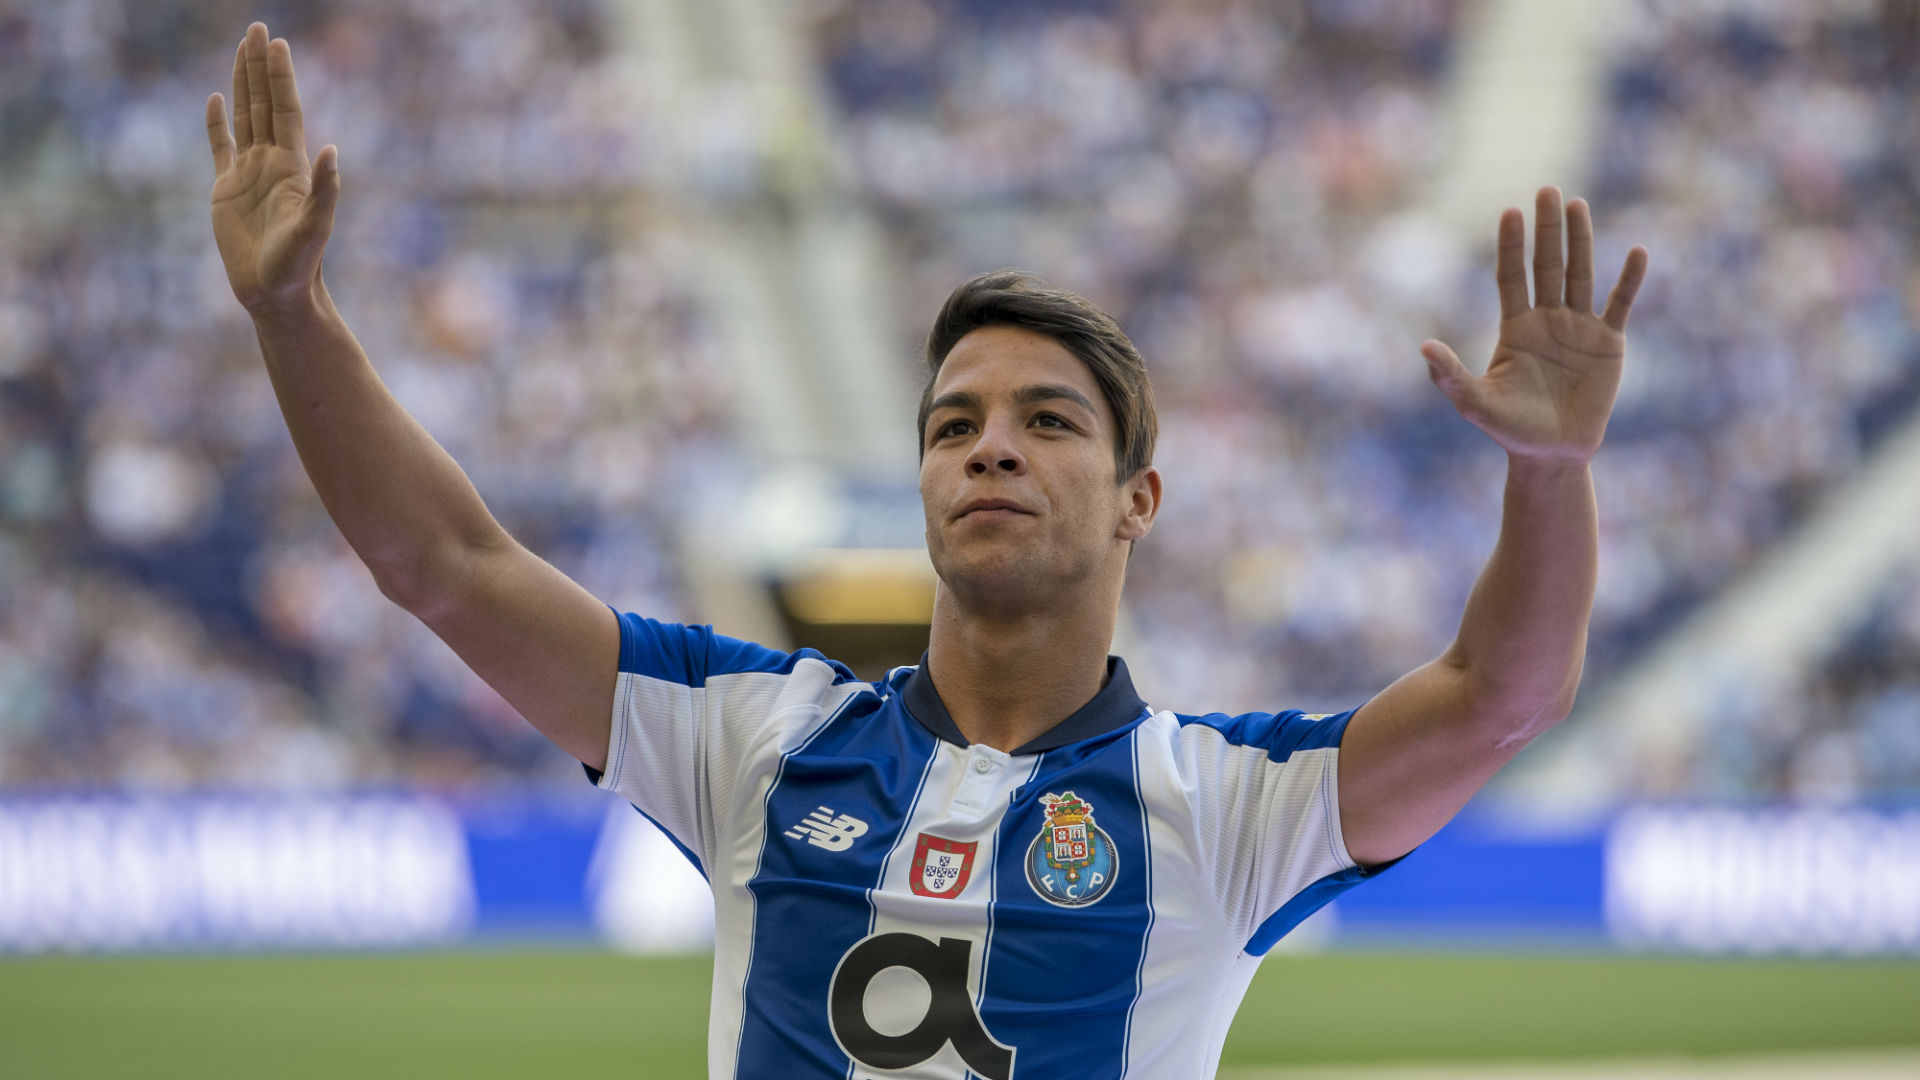 Sevilla spree surpasses €120m with Oliver Torres capture